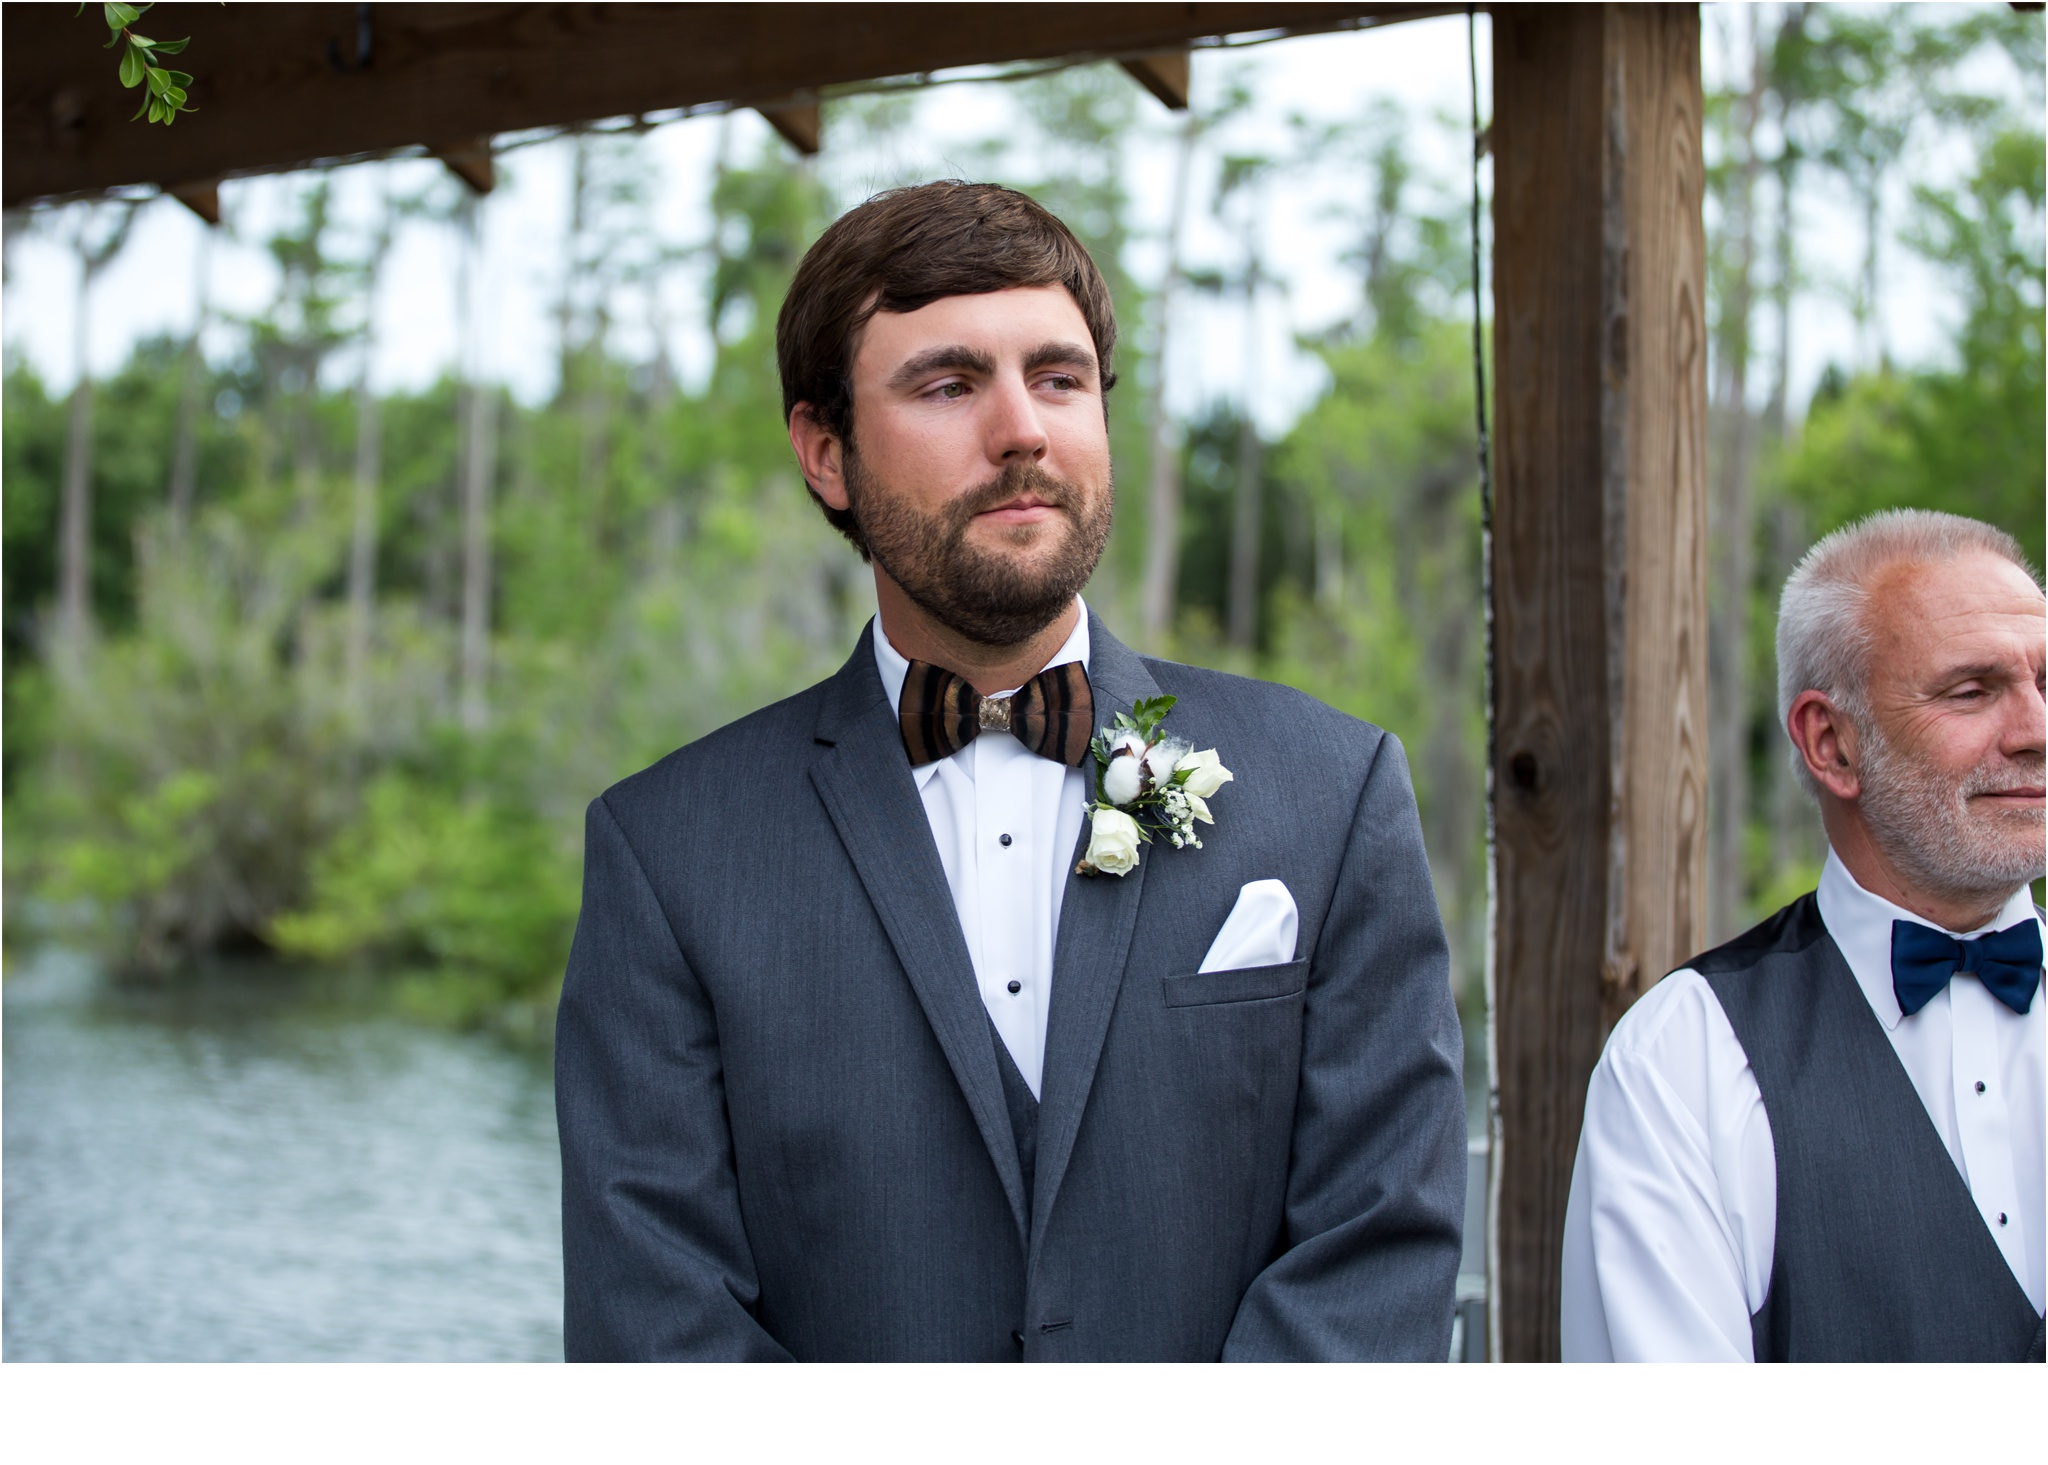 Rainey_Gregg_Photography_St._Simons_Island_Georgia_California_Wedding_Portrait_Photography_0959.jpg